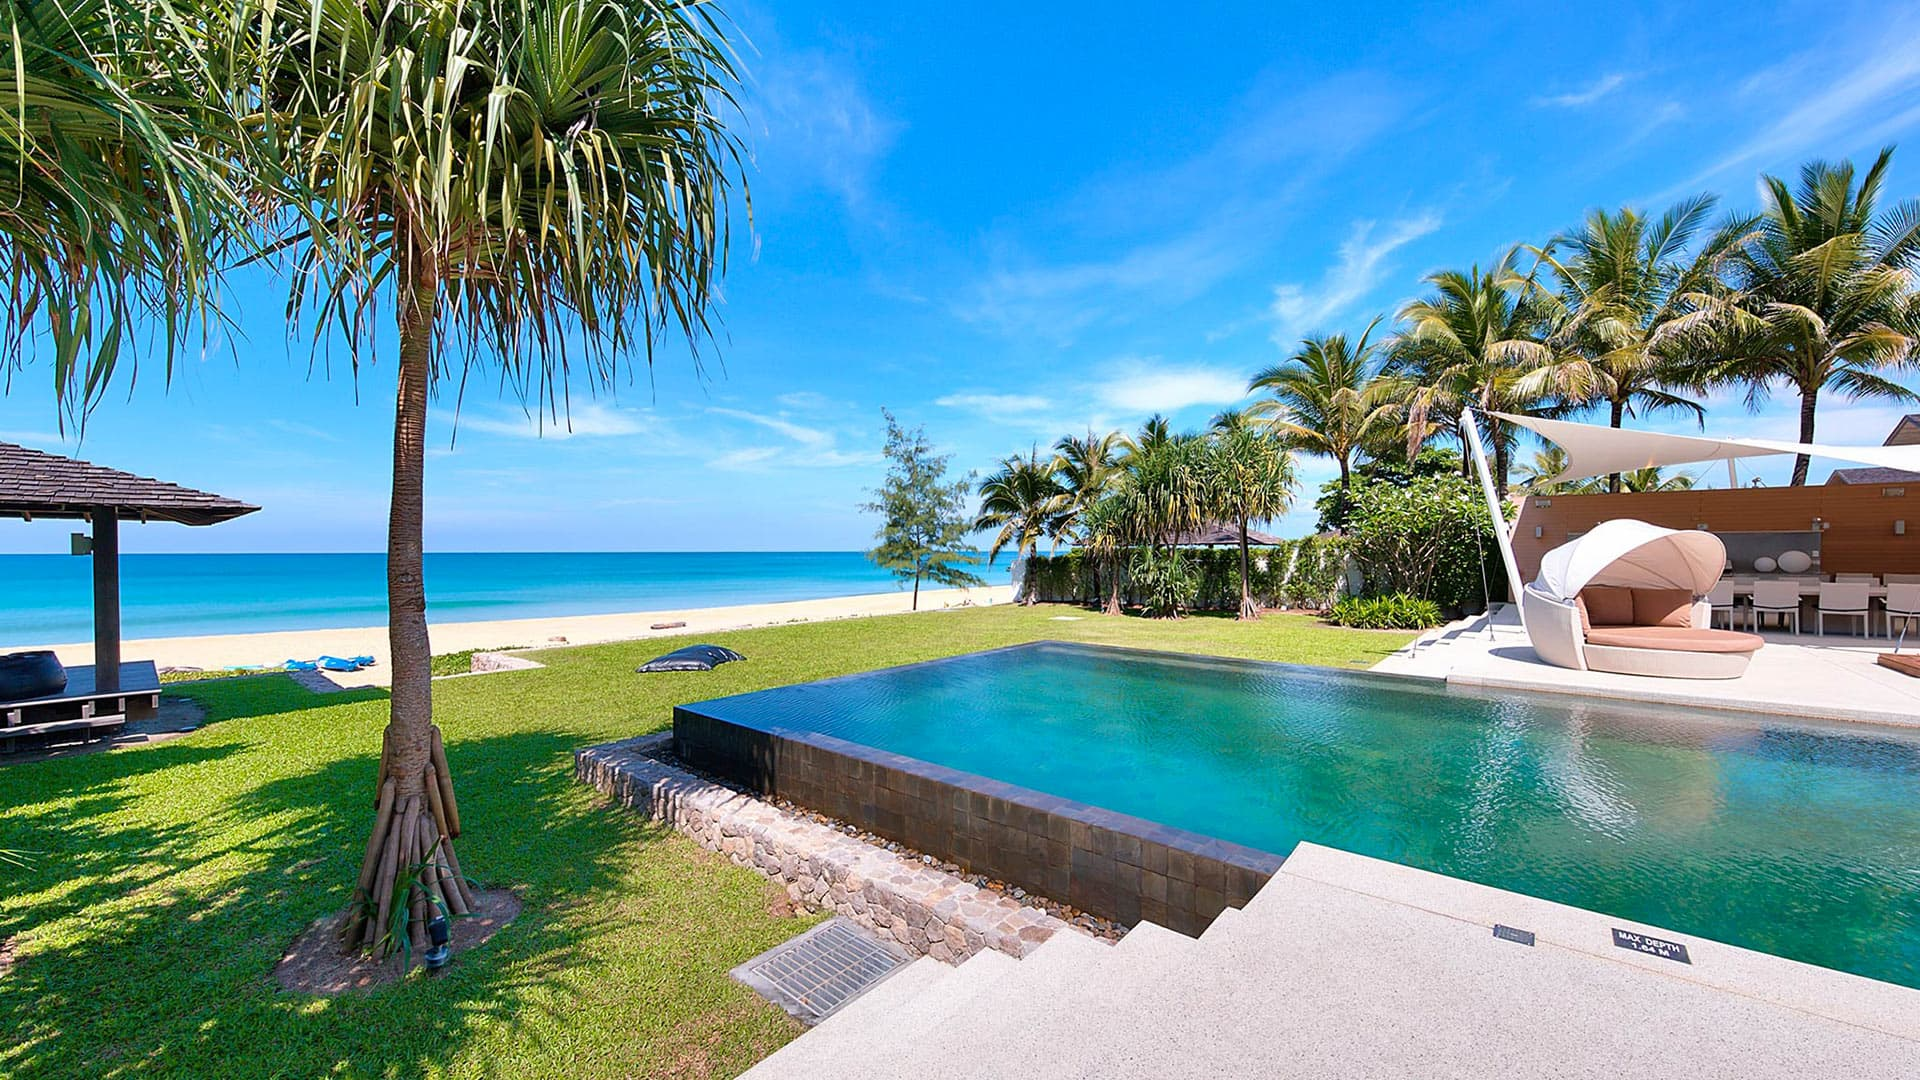 Villa Sava Beach Villas - Tievoli, Location à Phuket